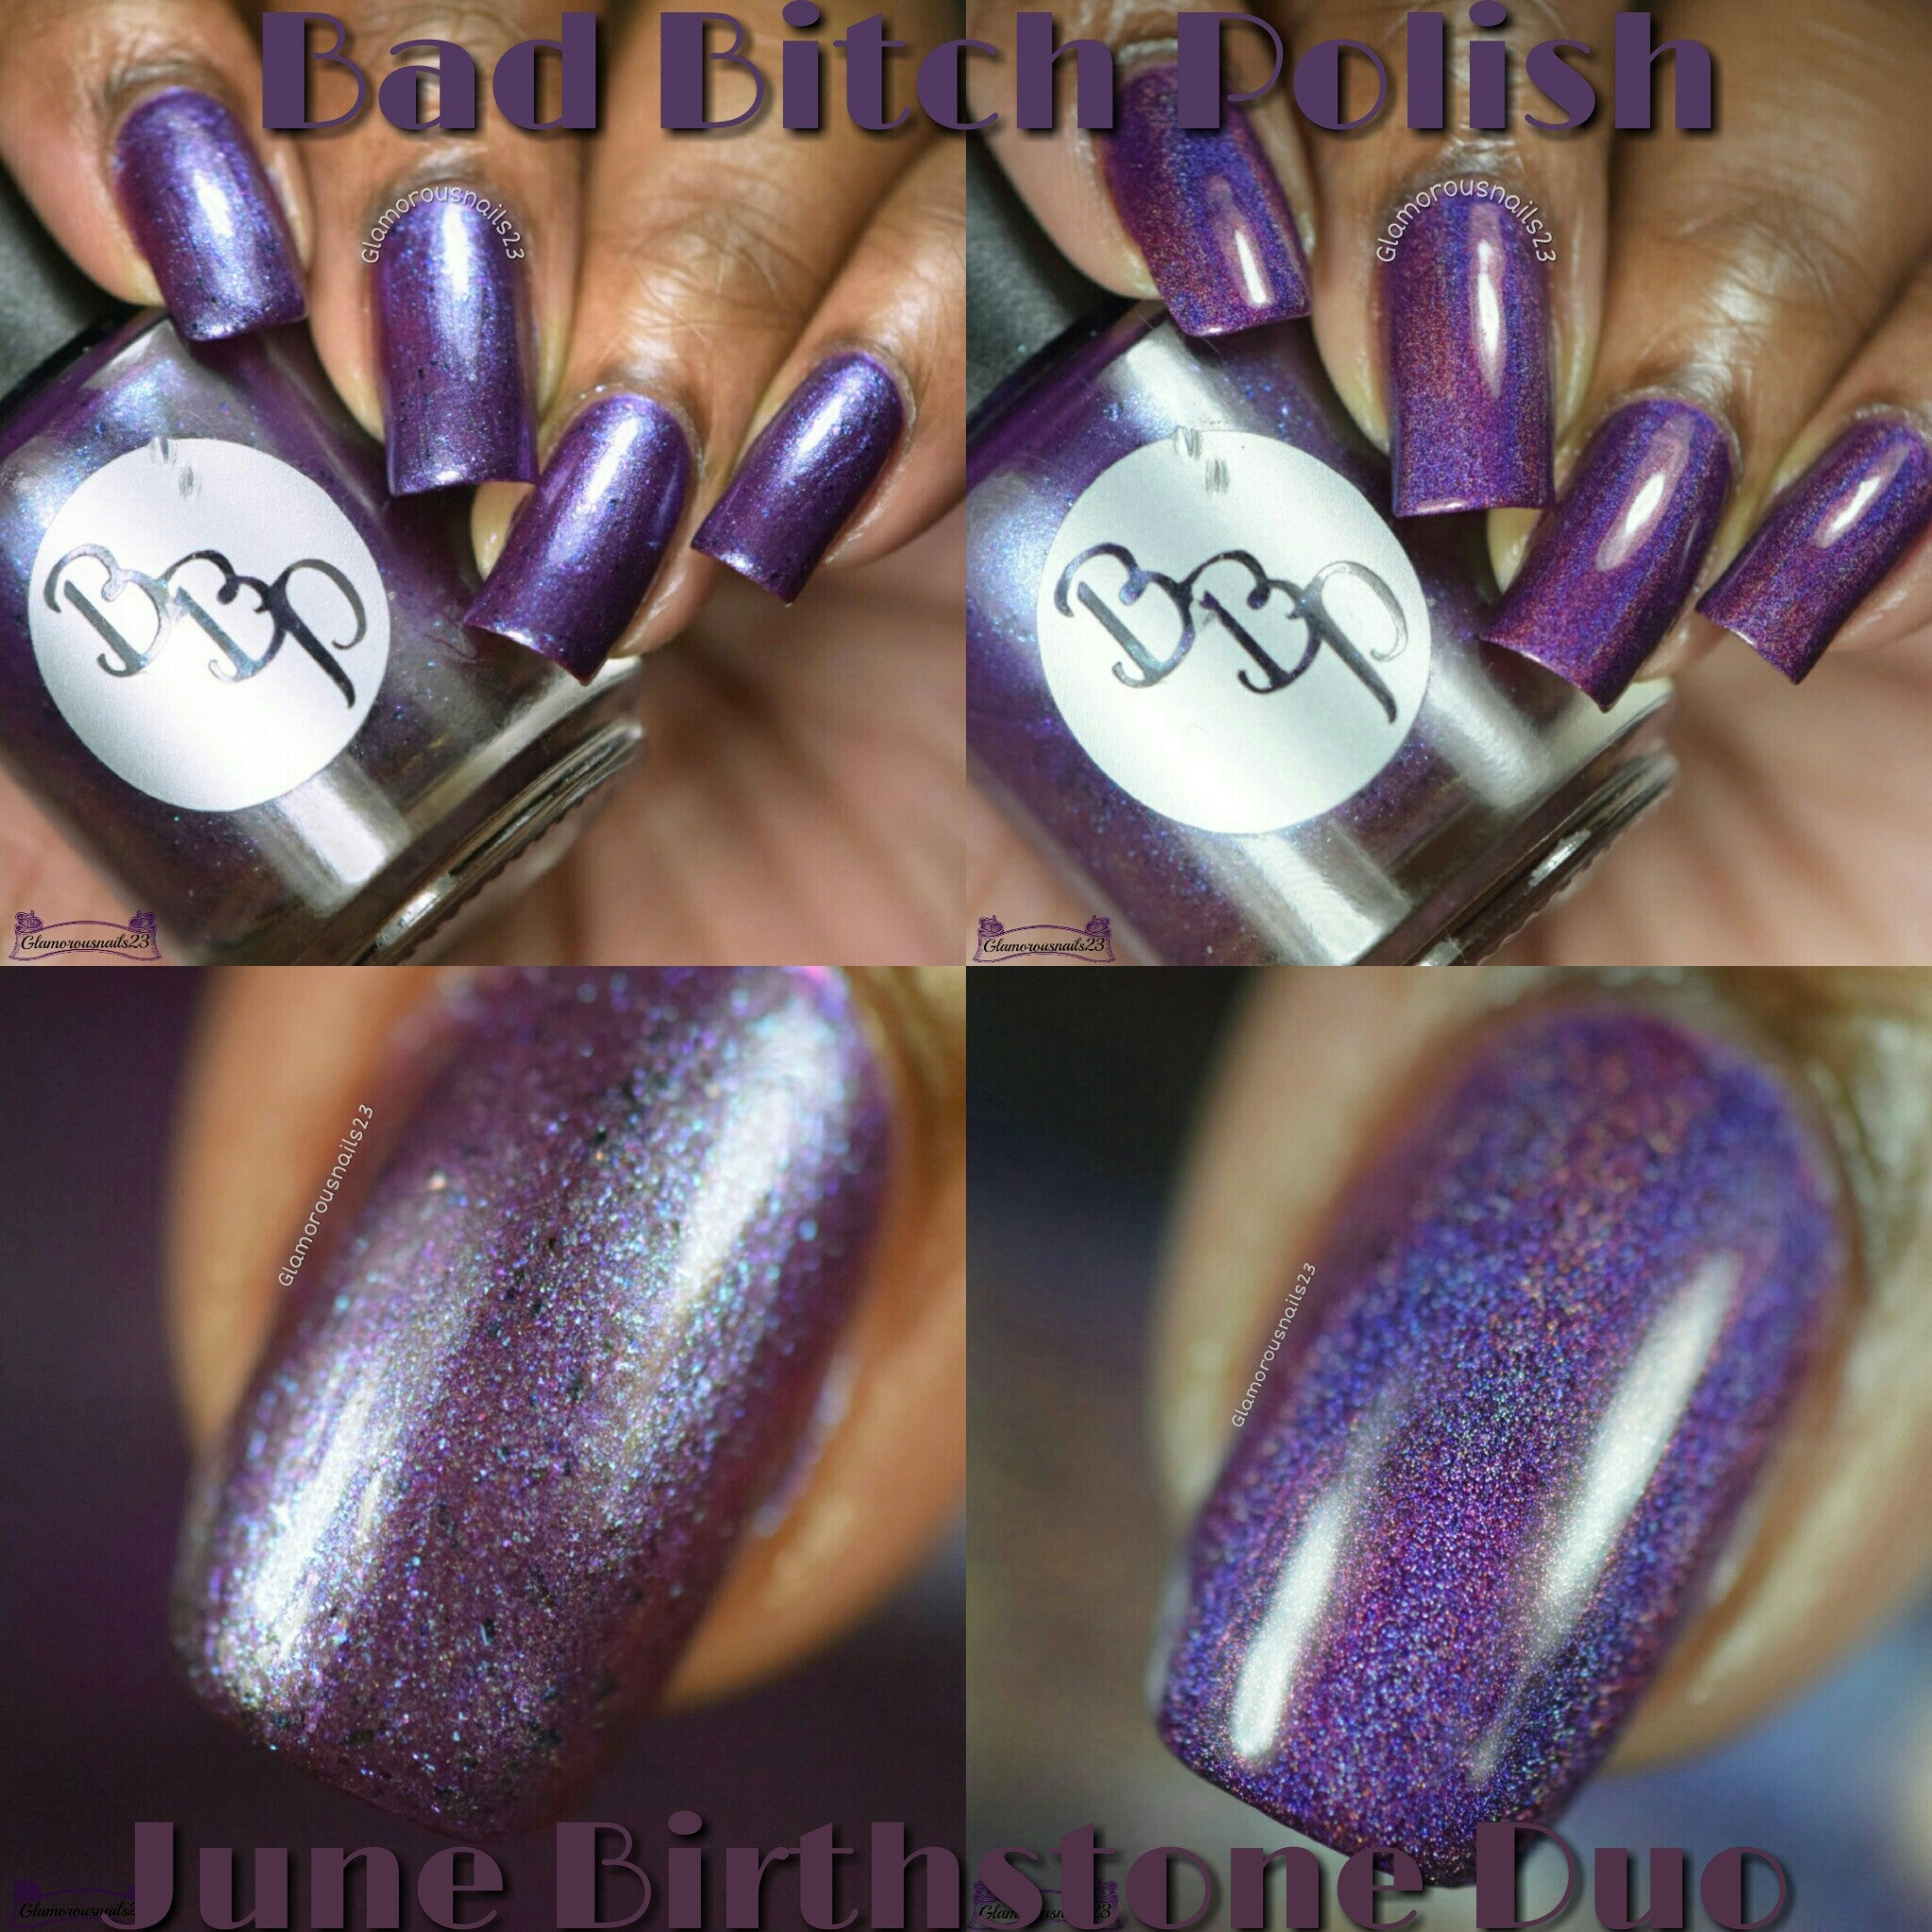 June Birthstone Duo